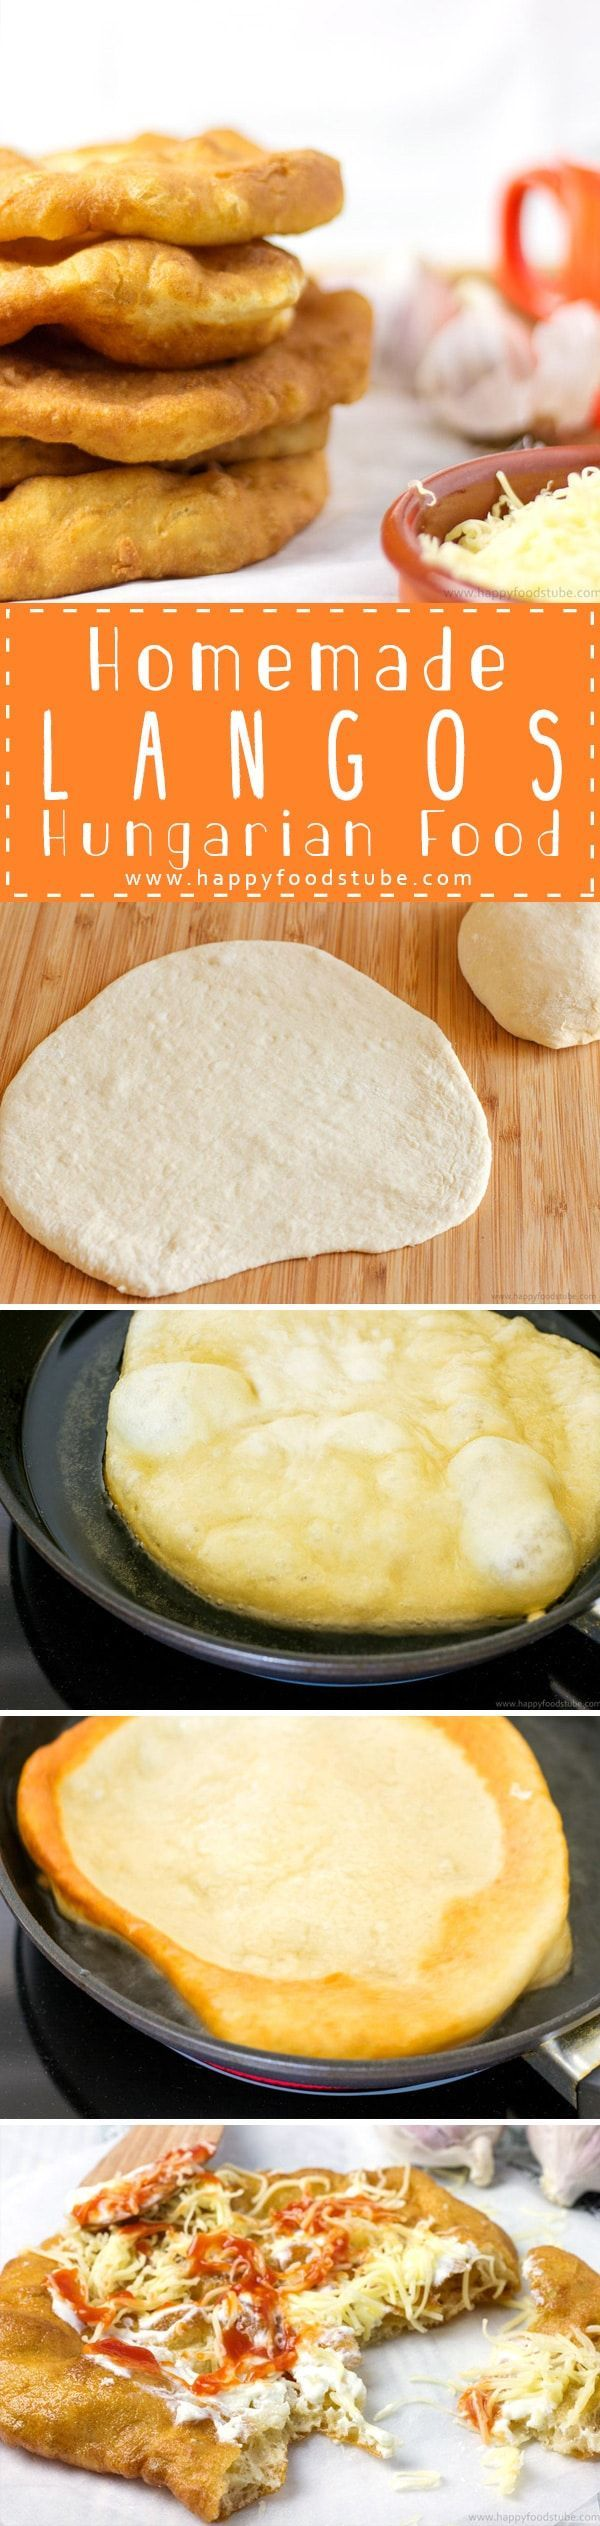 Langos (pronounce Langosh) is a Hungarian deep fried flat bread (made of yeast, flour & water). Only 5 ingredients via /happyfoodstube/